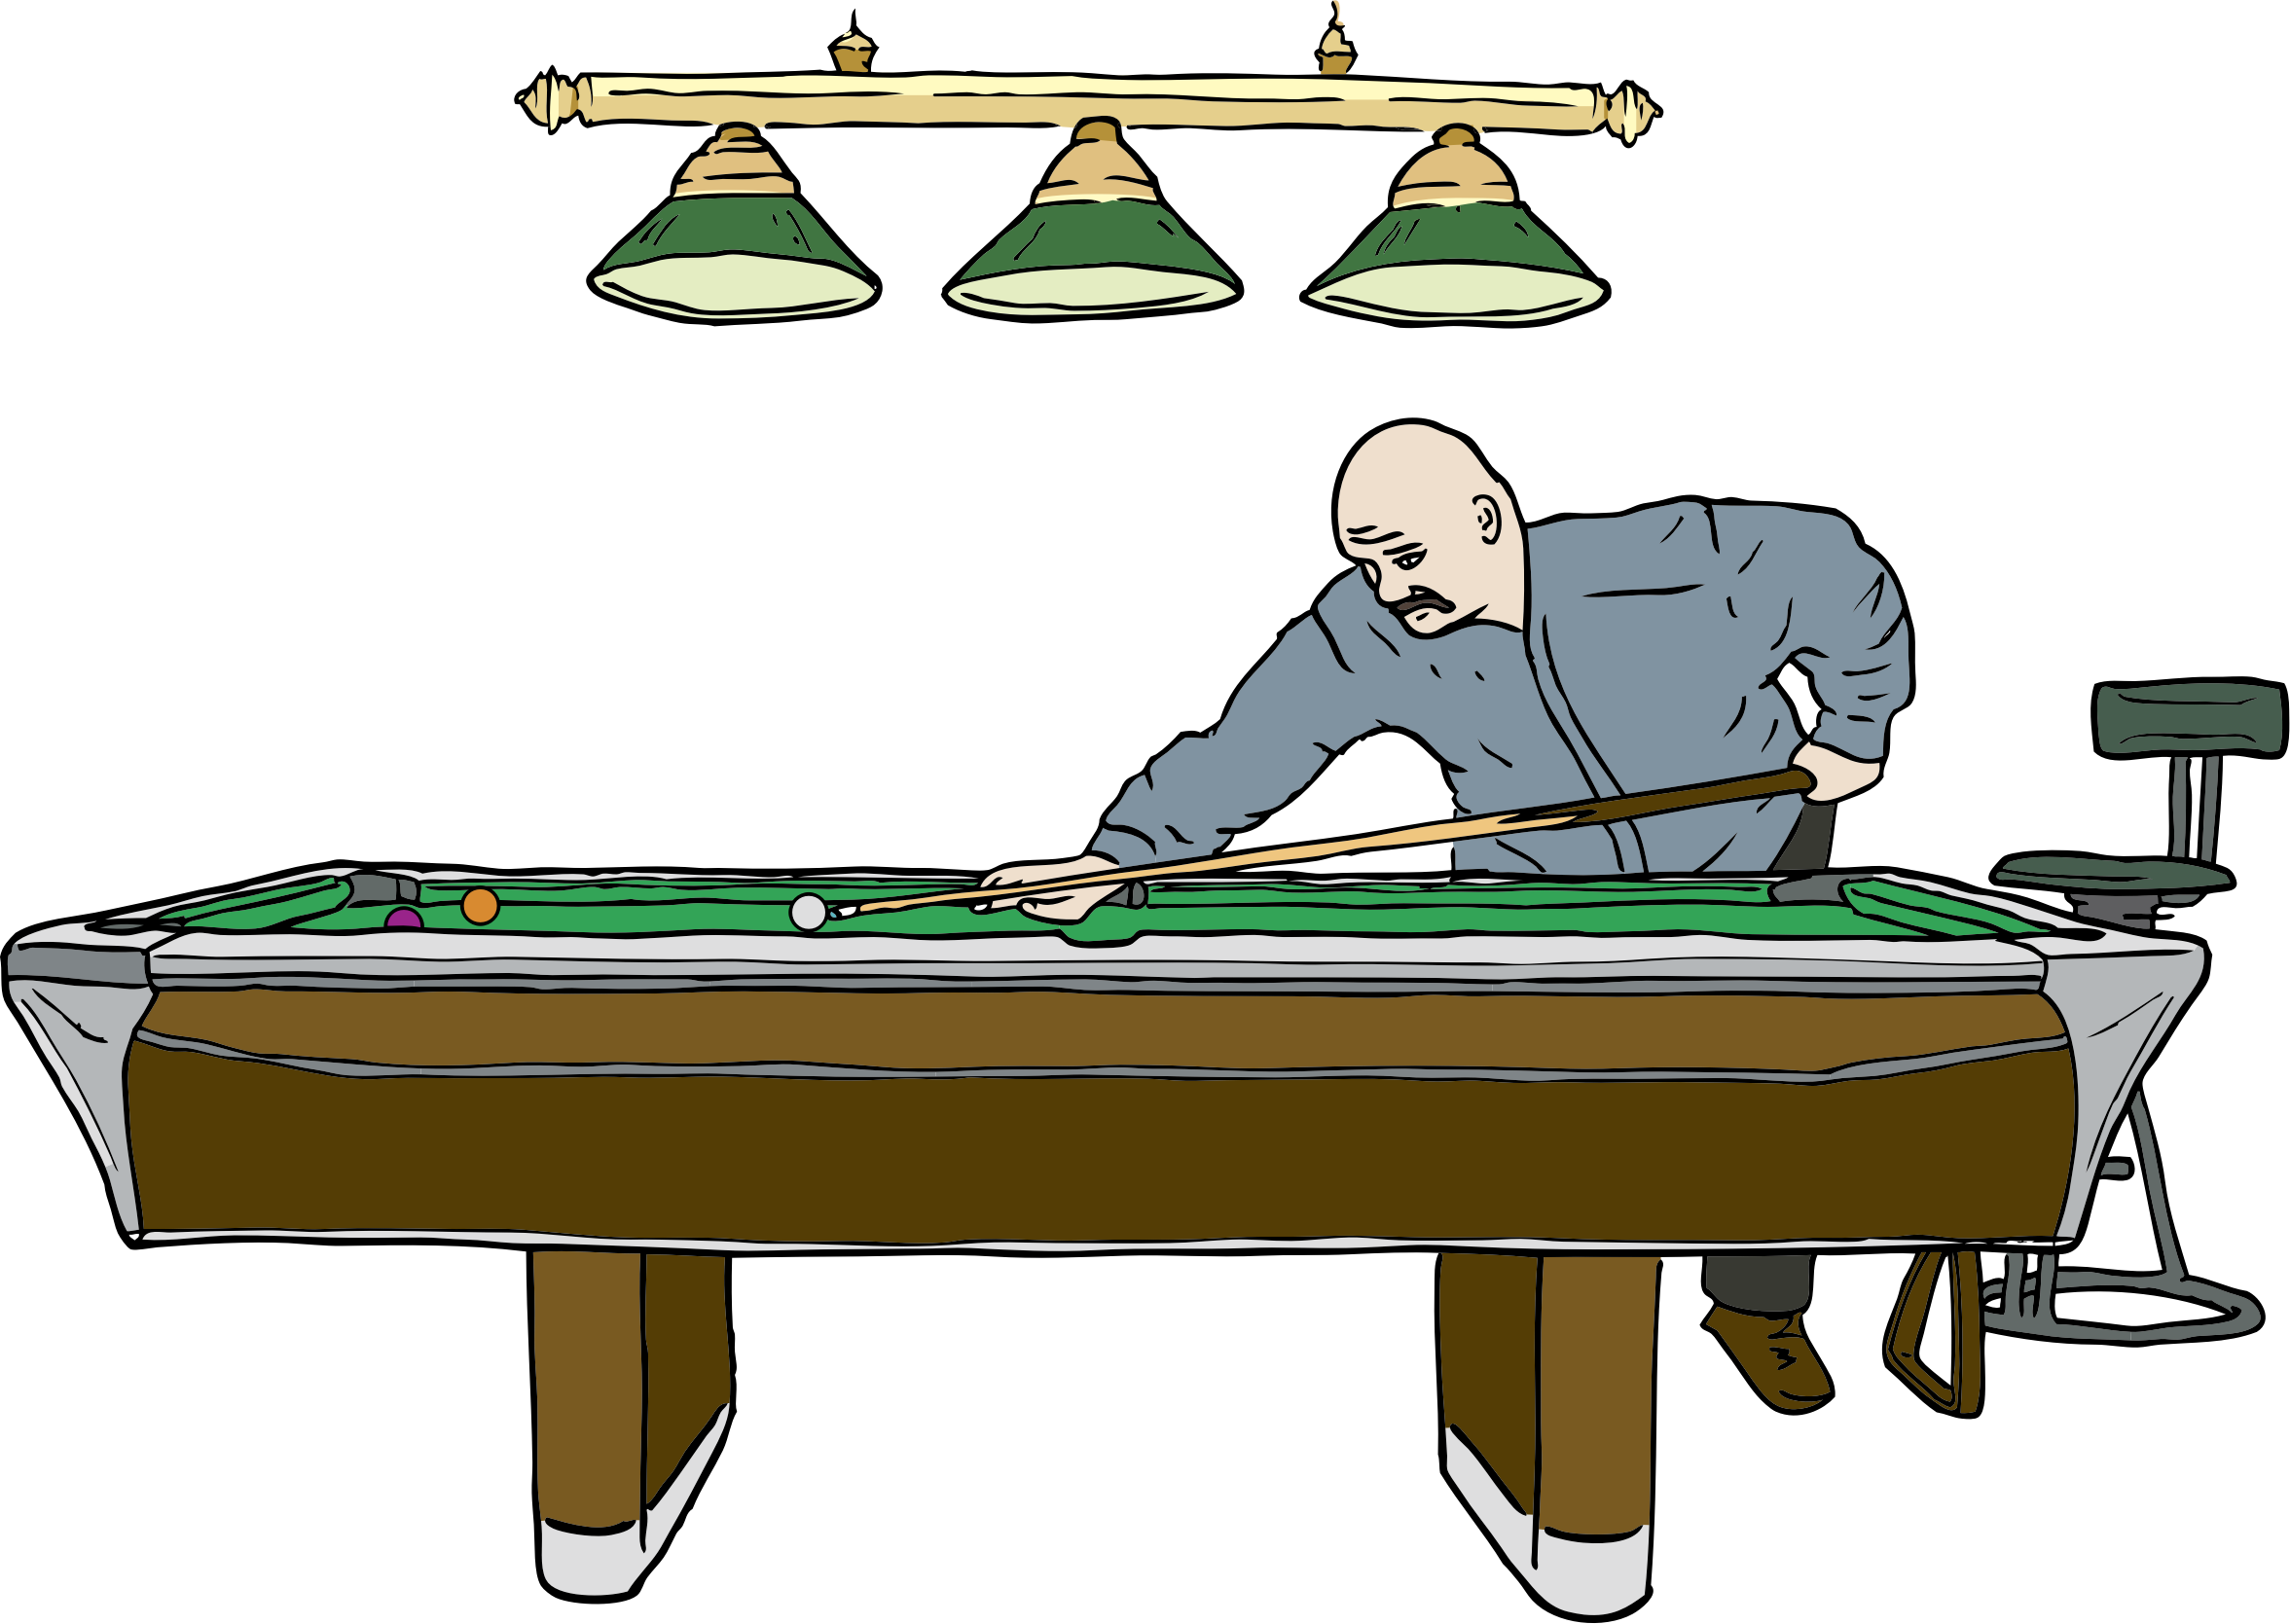 Pool Table with Player by SteveLambert